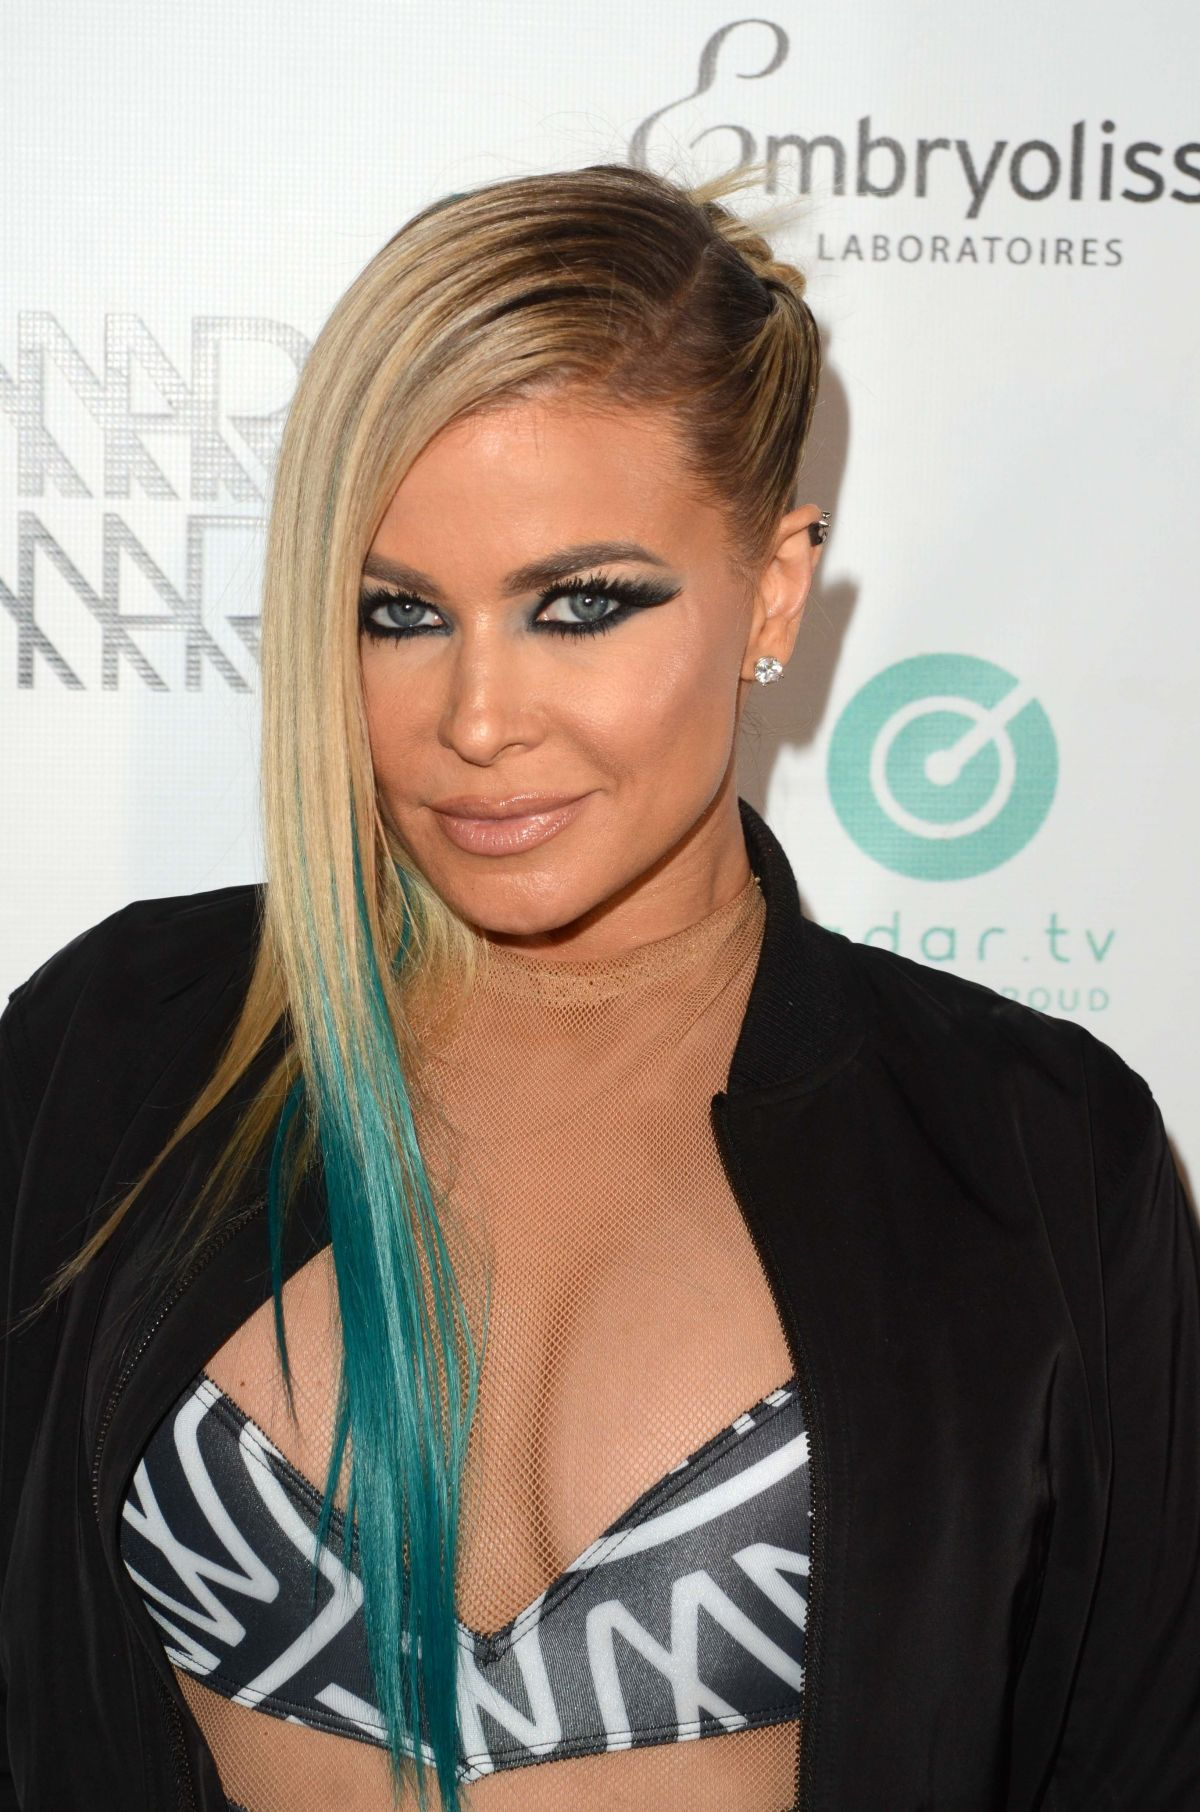 CARMEN ELECTRA at Marco Marco Fashion Show in Los Angeles 10/21/2016